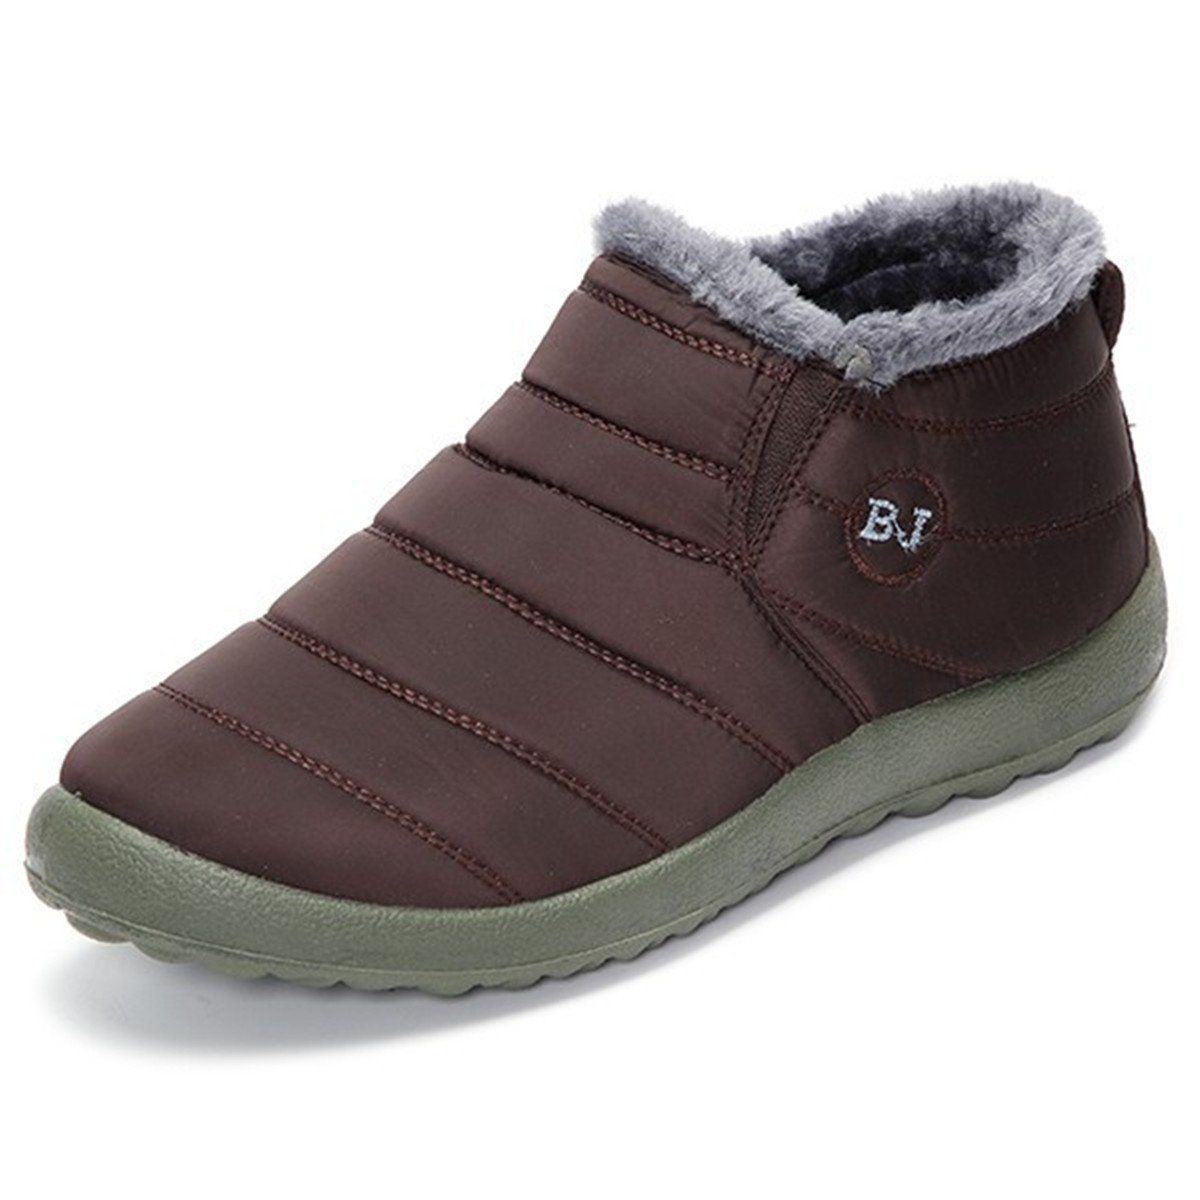 gracosy Winter Snow Ankle Boots Fur Lining Waterproof Outdoor Slip On Booties Sneakers for Men and Women GRACOSYWERTY3455